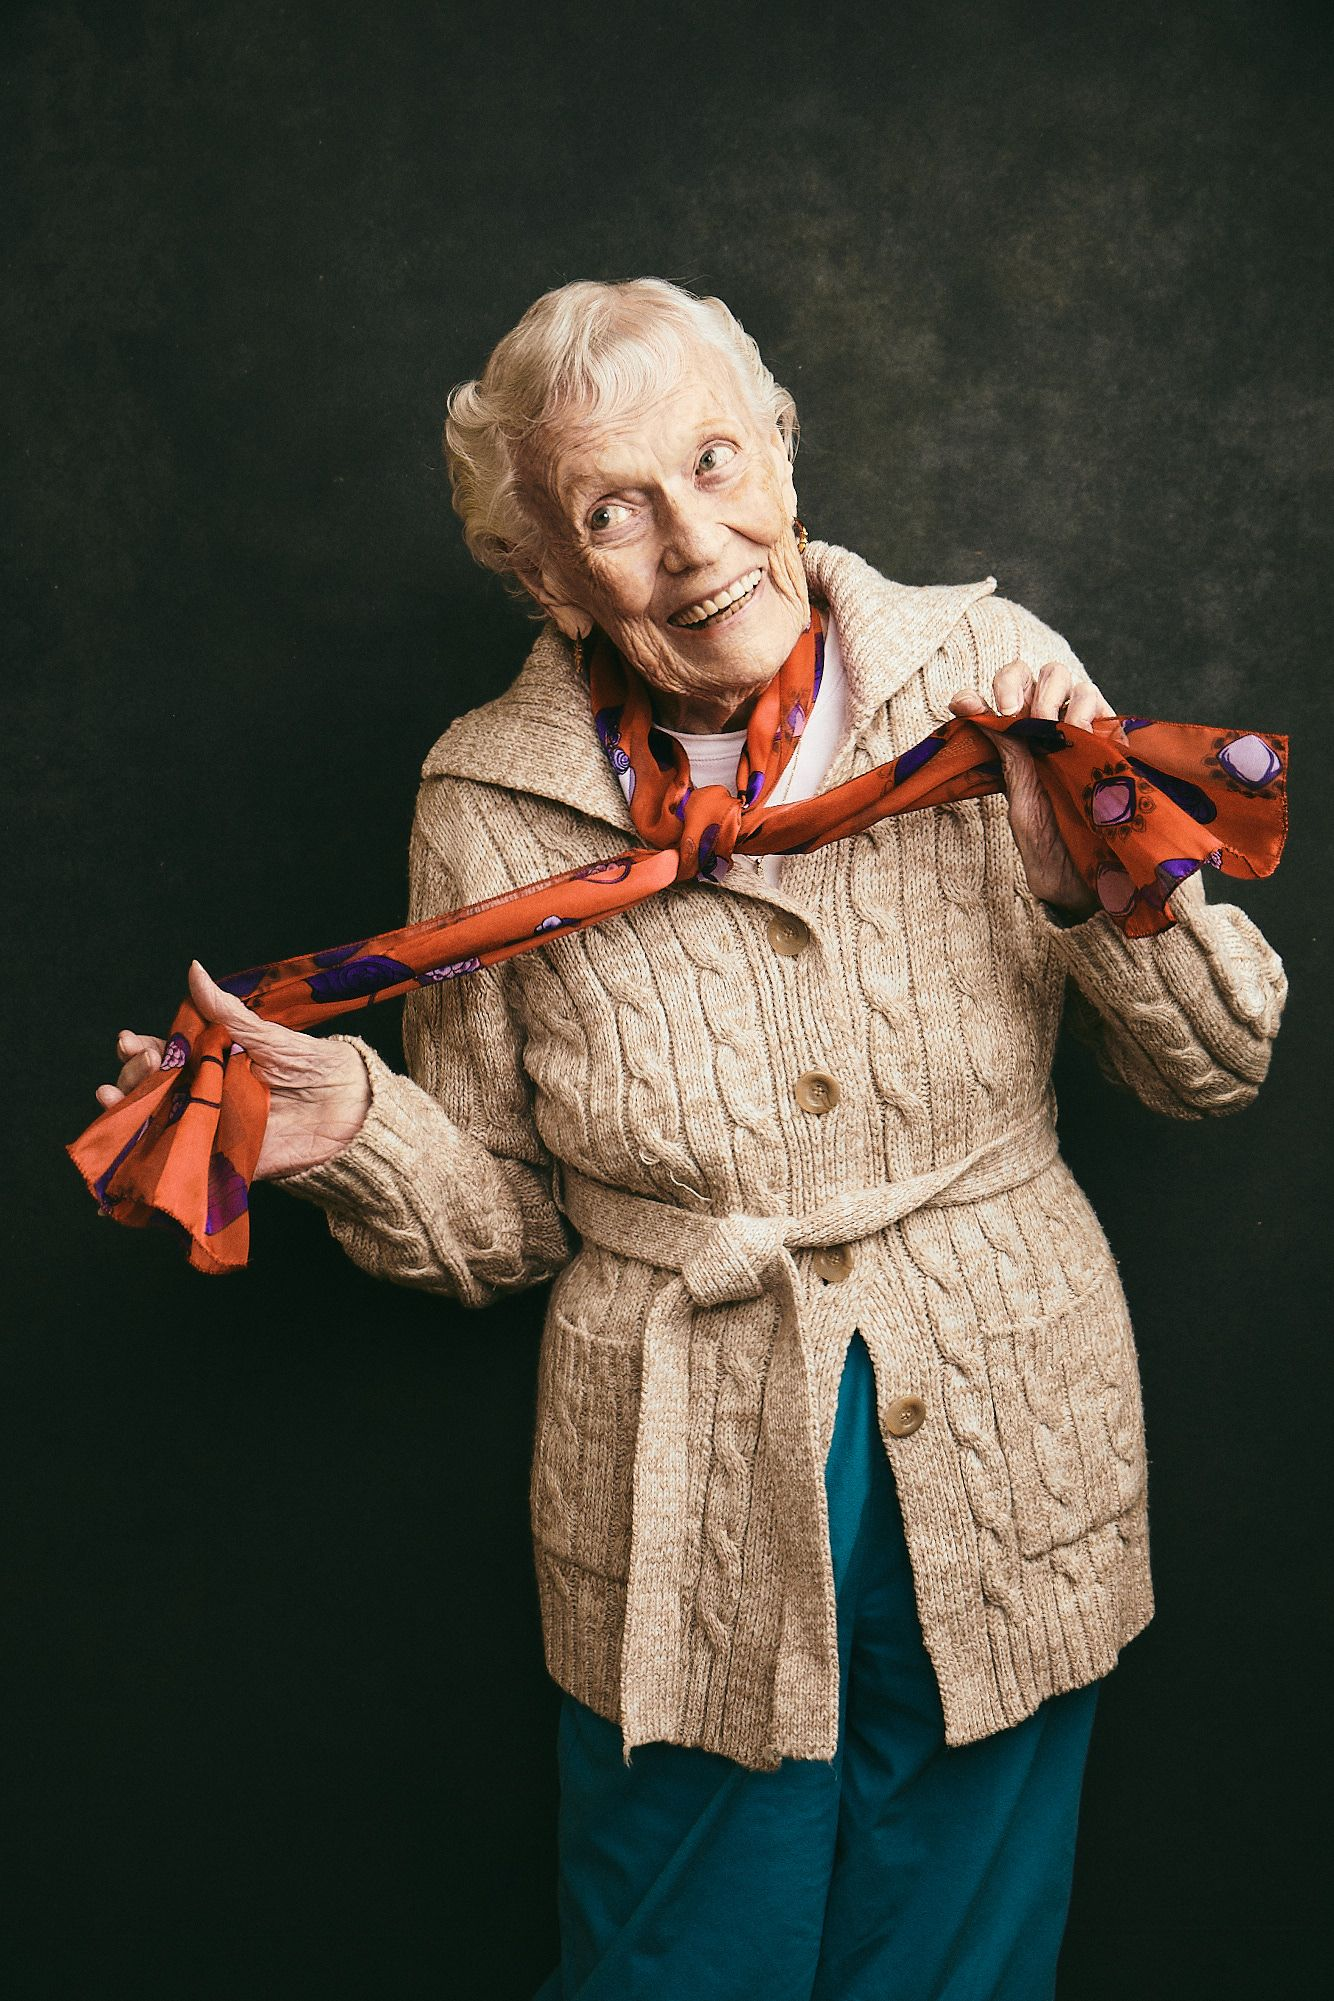 To the ones that inspire us daily, Happy Senior Citizens